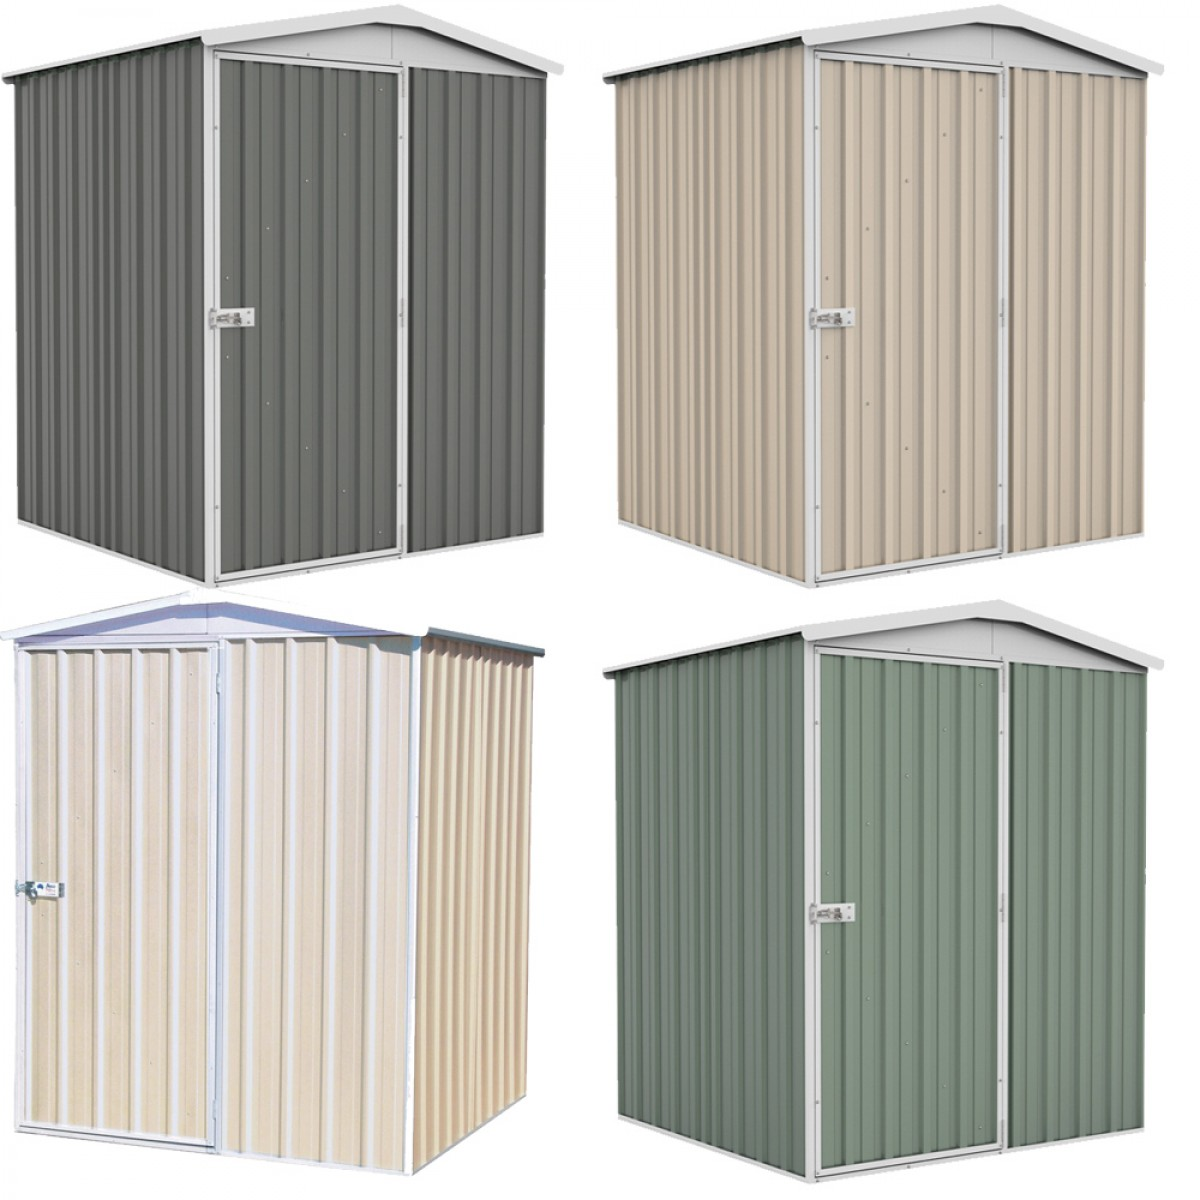 Garden Sheds 3x2 Mini Shed 3 Inside Design Inspiration